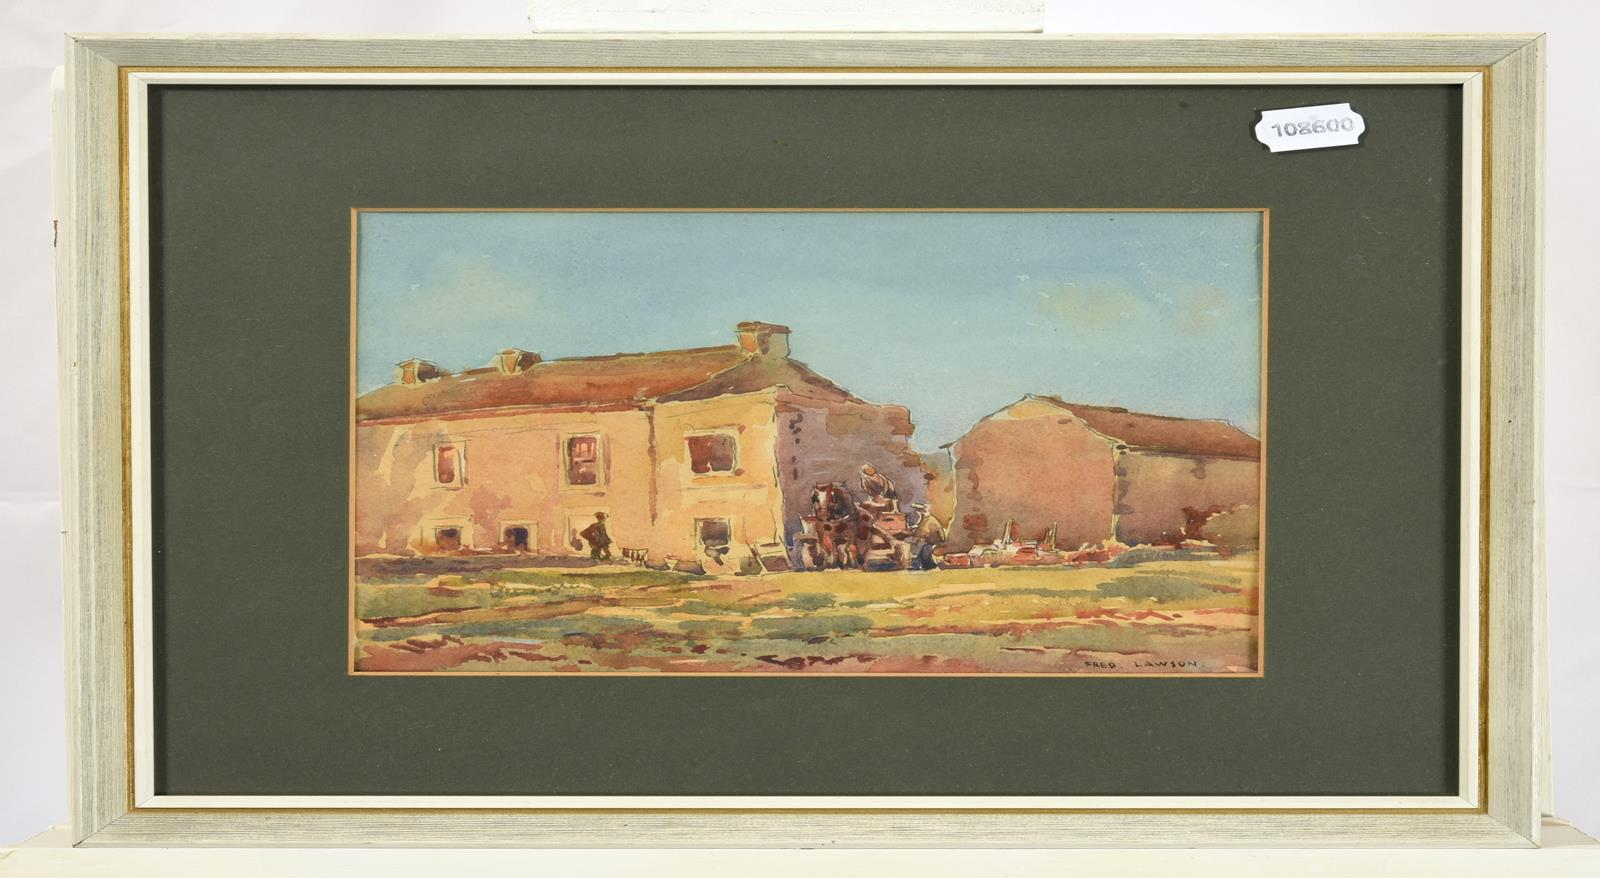 Frederick (Fred) Lawson (1888-1968) Cart horse and figures before buildings on a bright day - Image 2 of 3